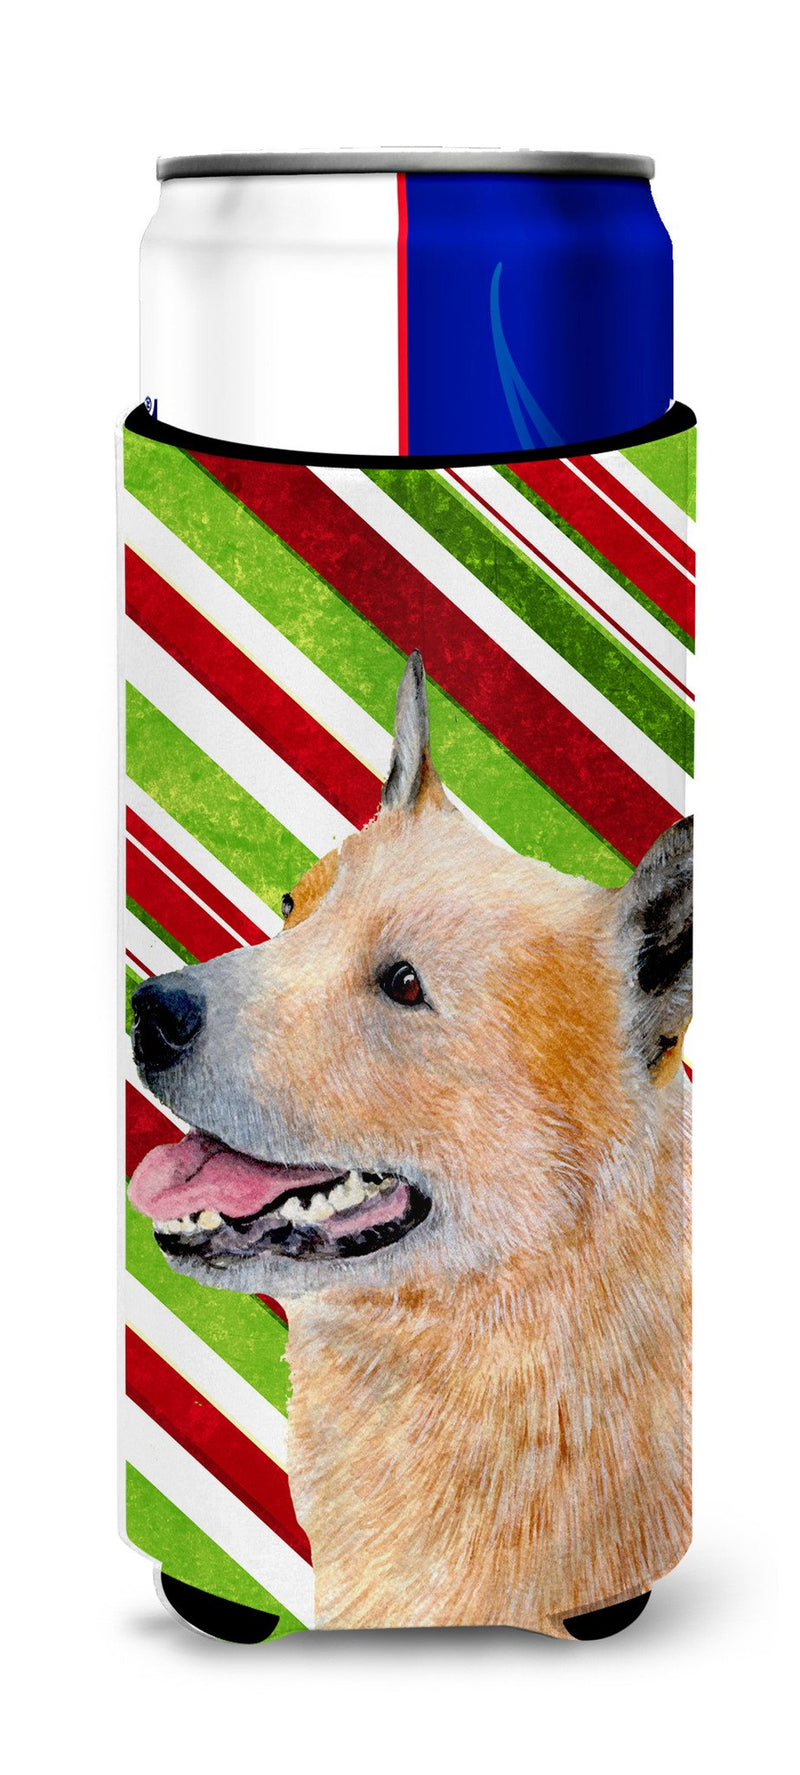 Australian Cattle Dog Candy Cane Holiday Christmas Ultra Beverage Insulators for slim cans LH9227MUK - the-store.com